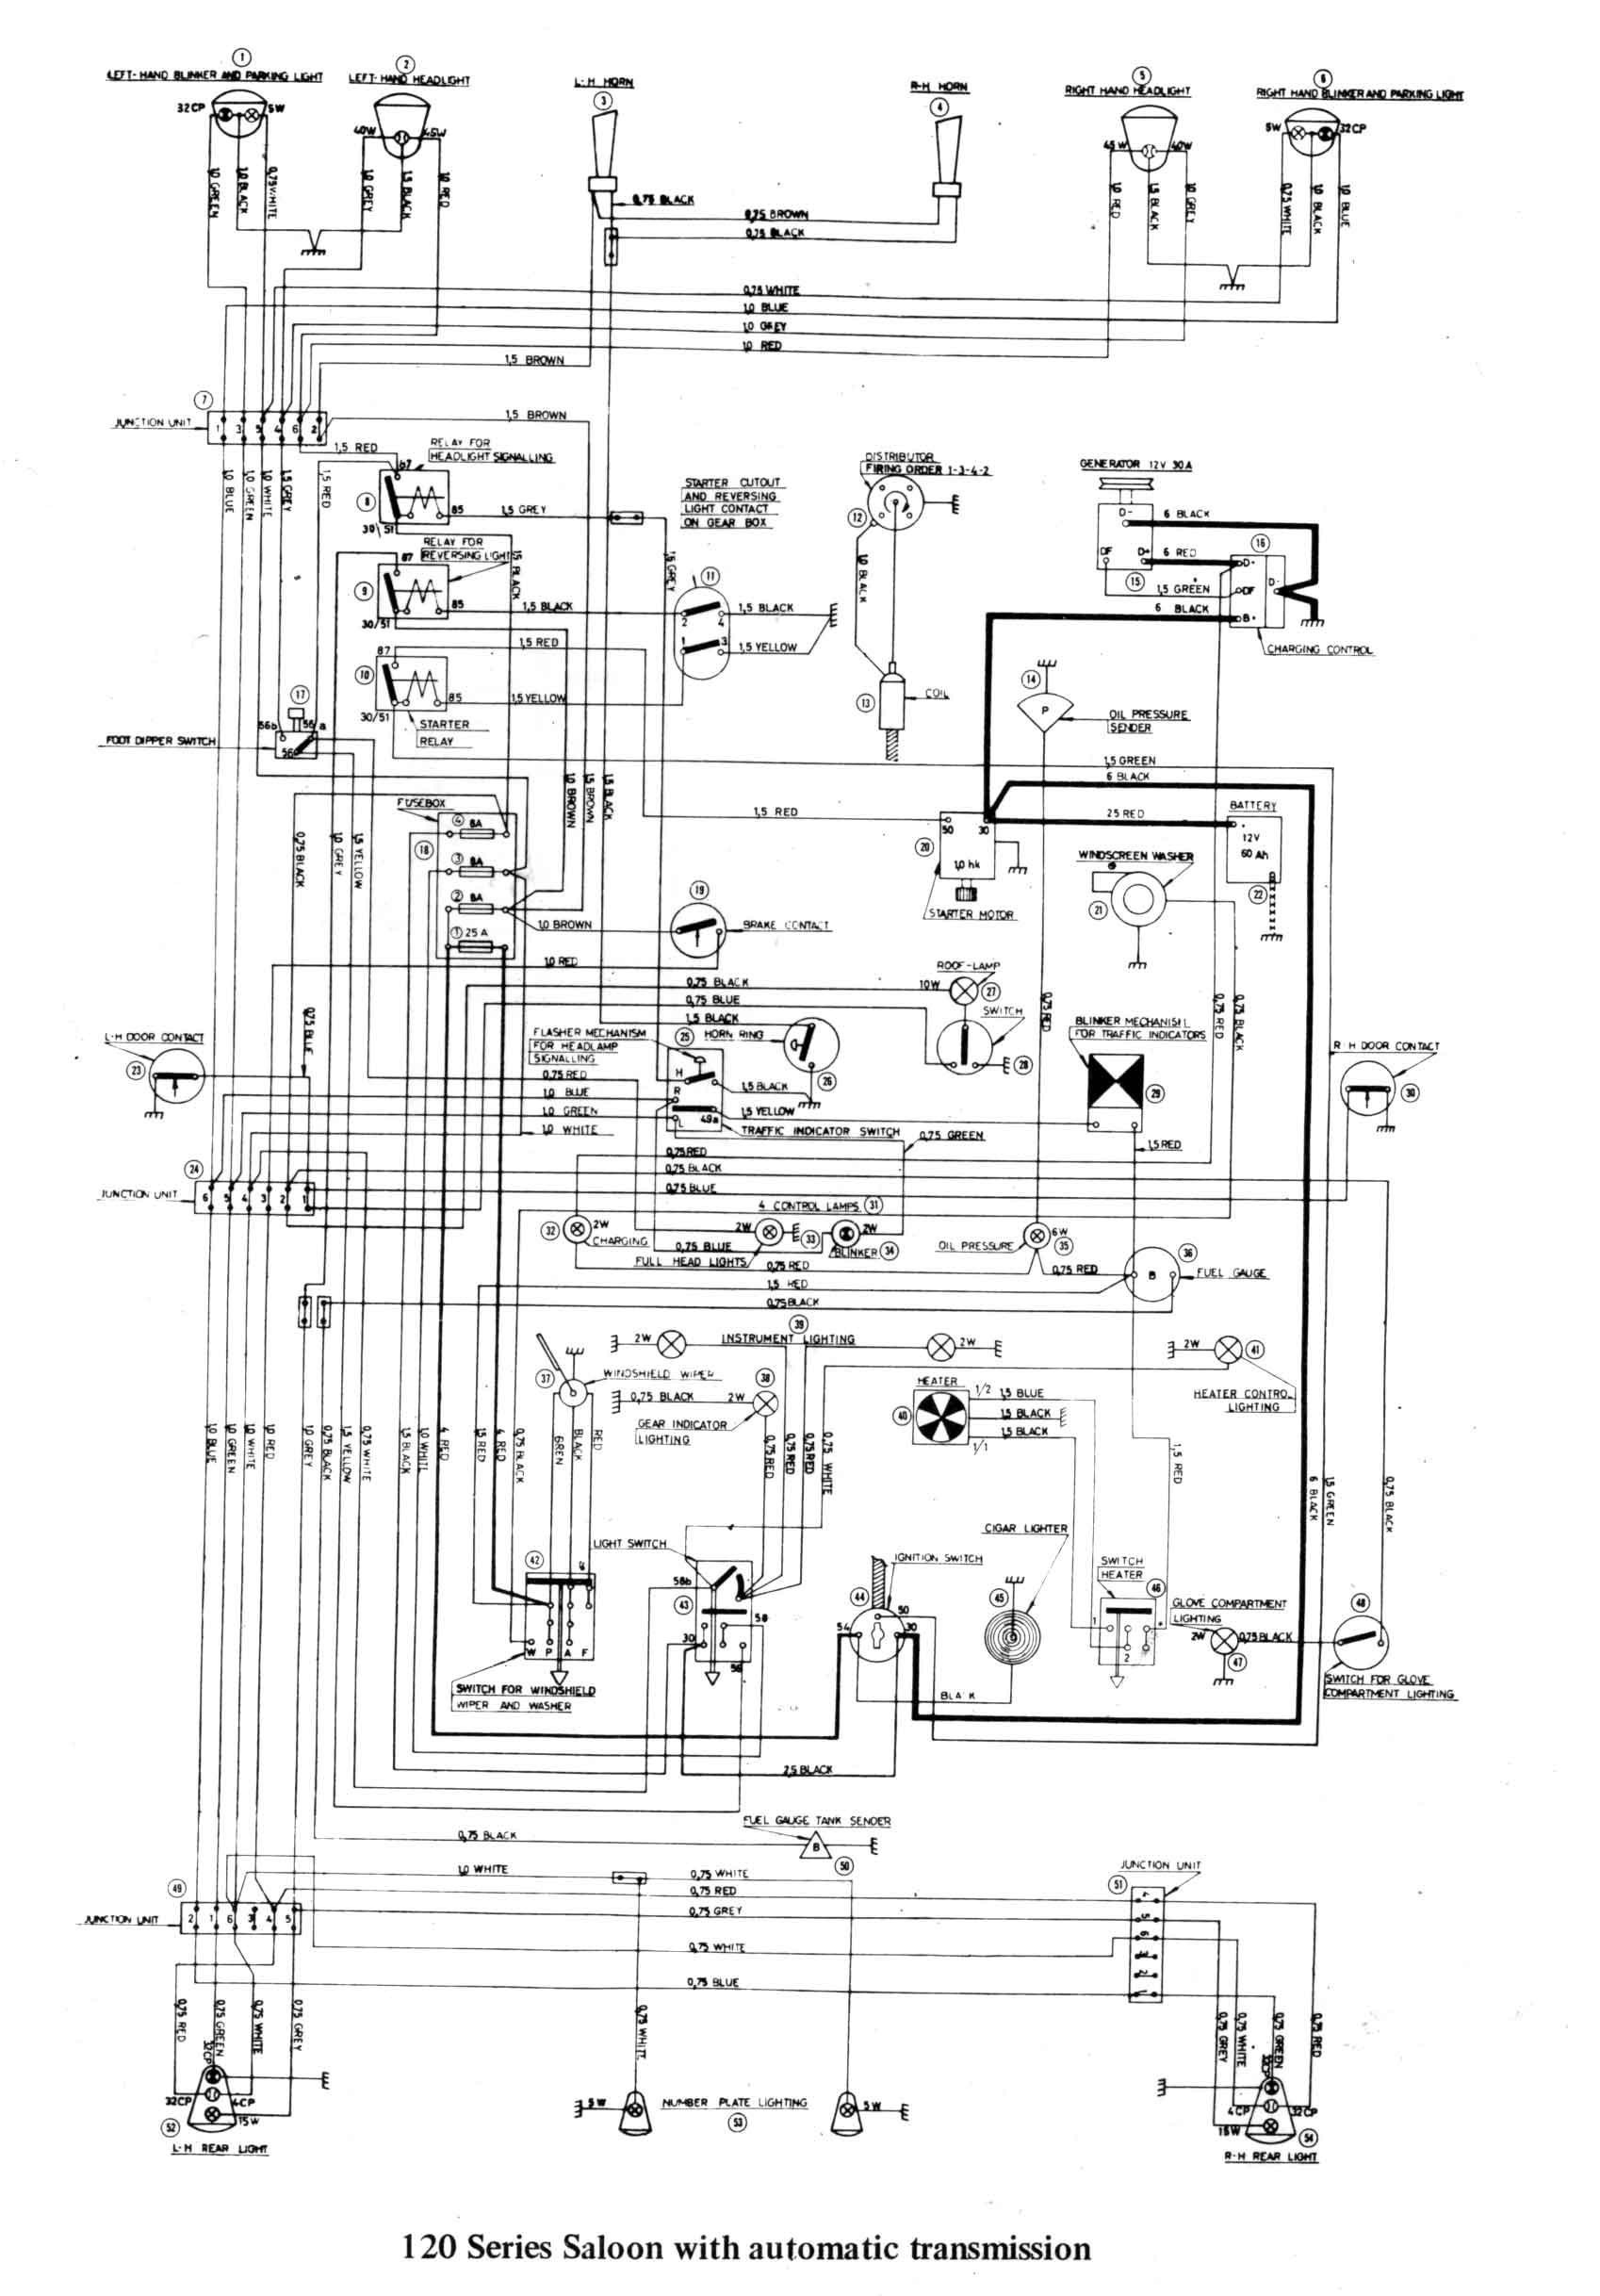 wiring diagram club car charger index listing of wiring diagramsclub car 290 engine diagram wiring diagram library